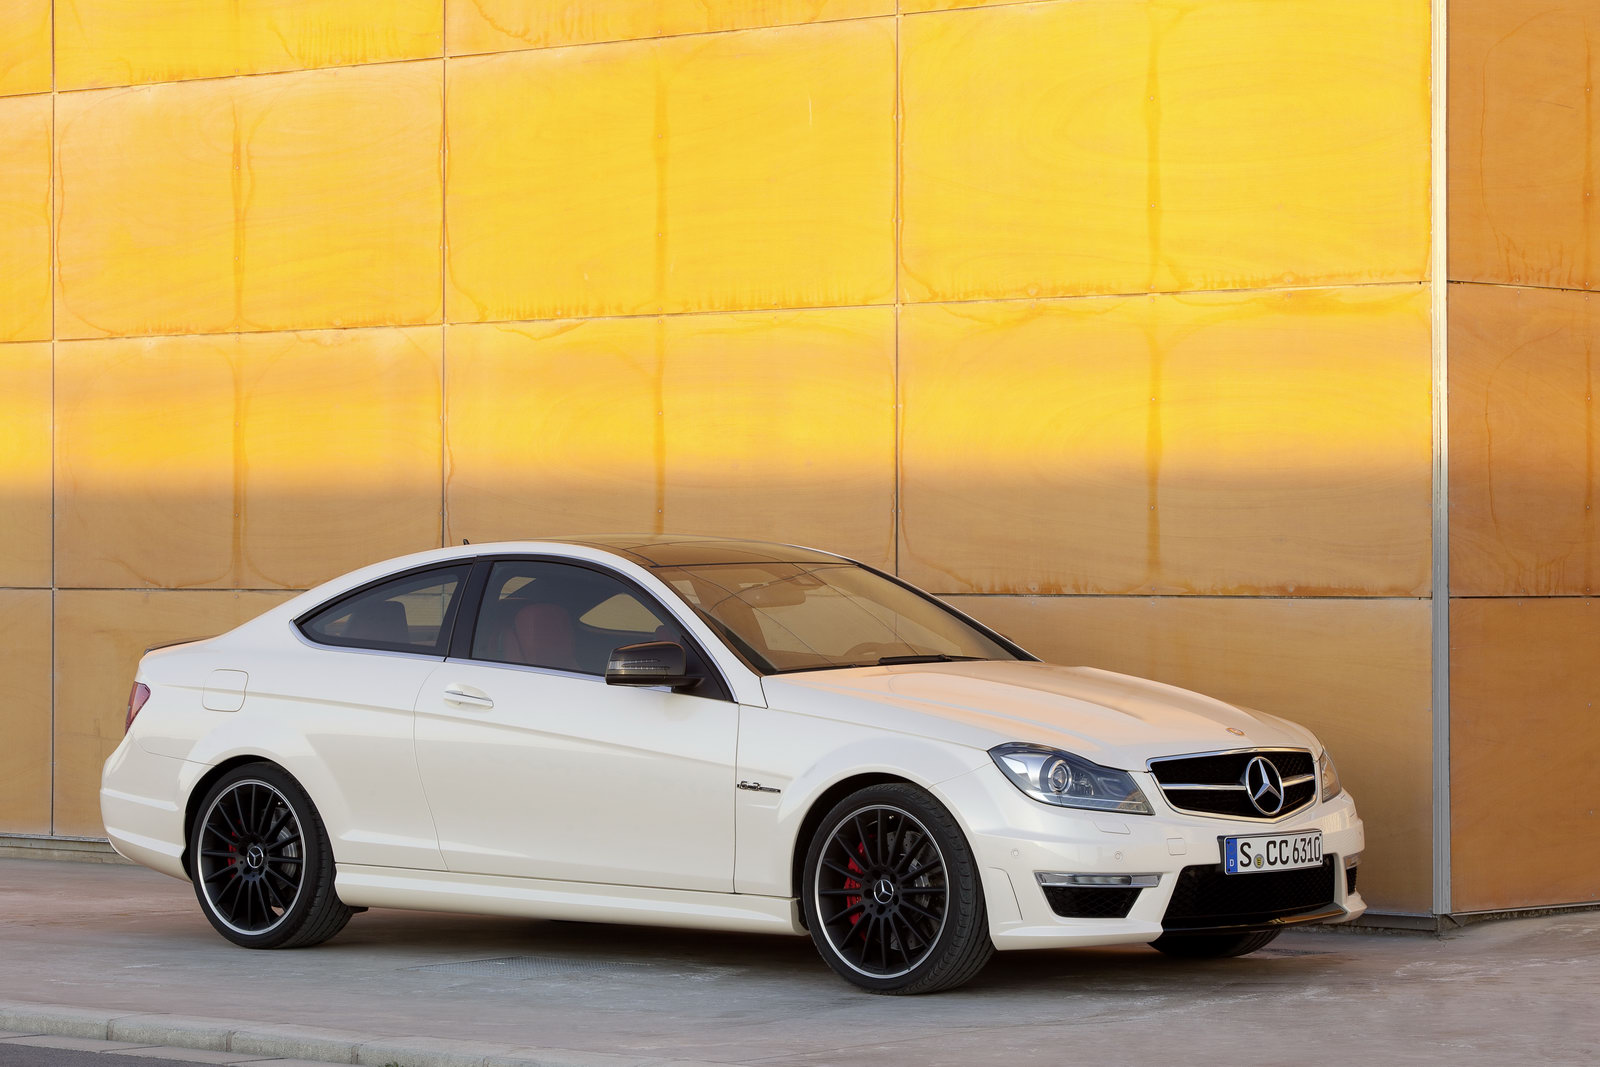 Mercedes c63 amg coup plan te for Mercedes benz c63 amg sedan